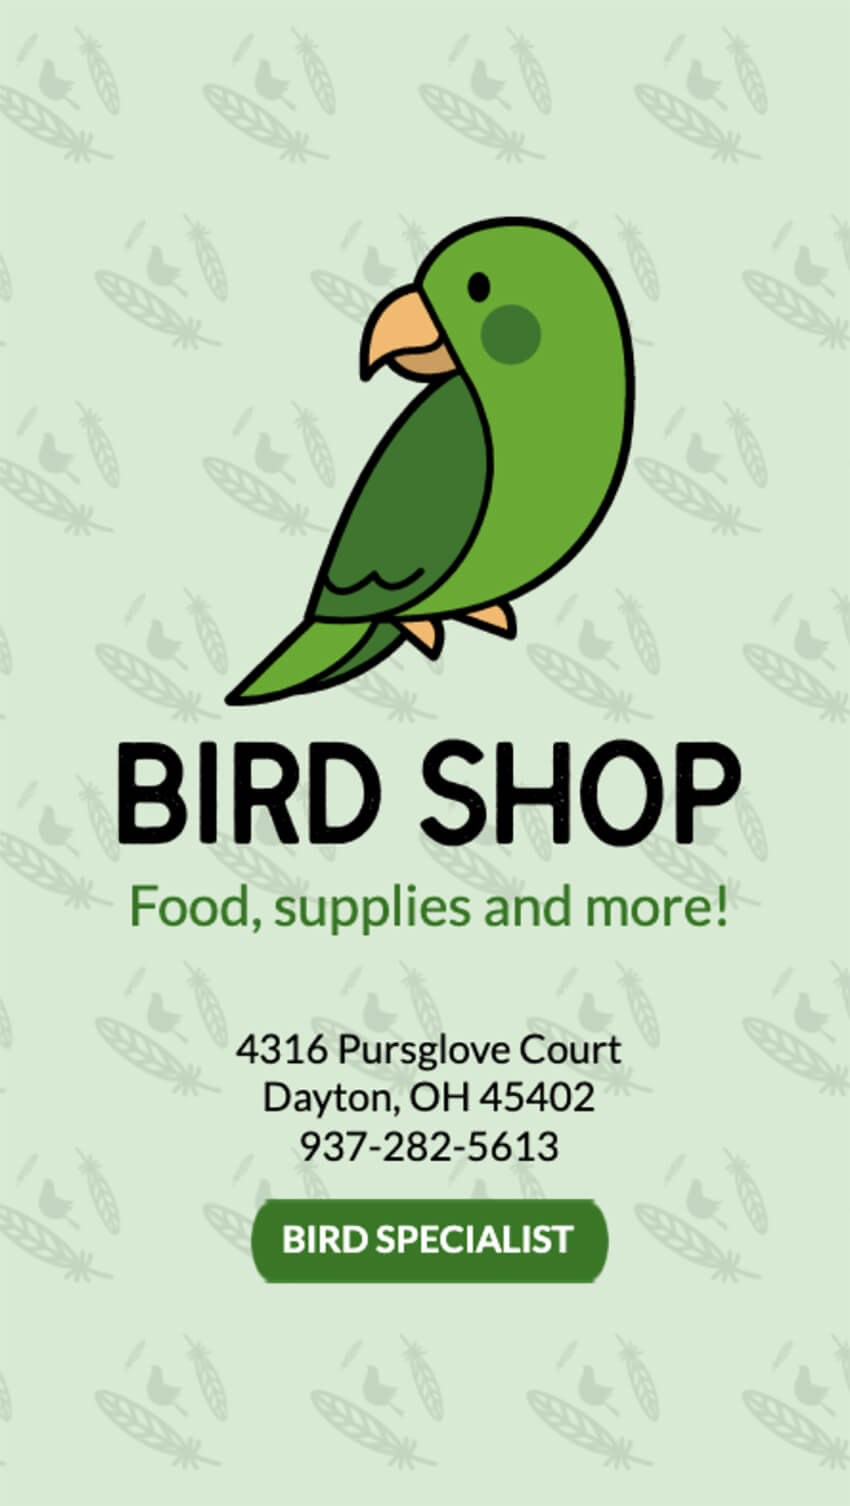 Business Card Maker for Bird Shops